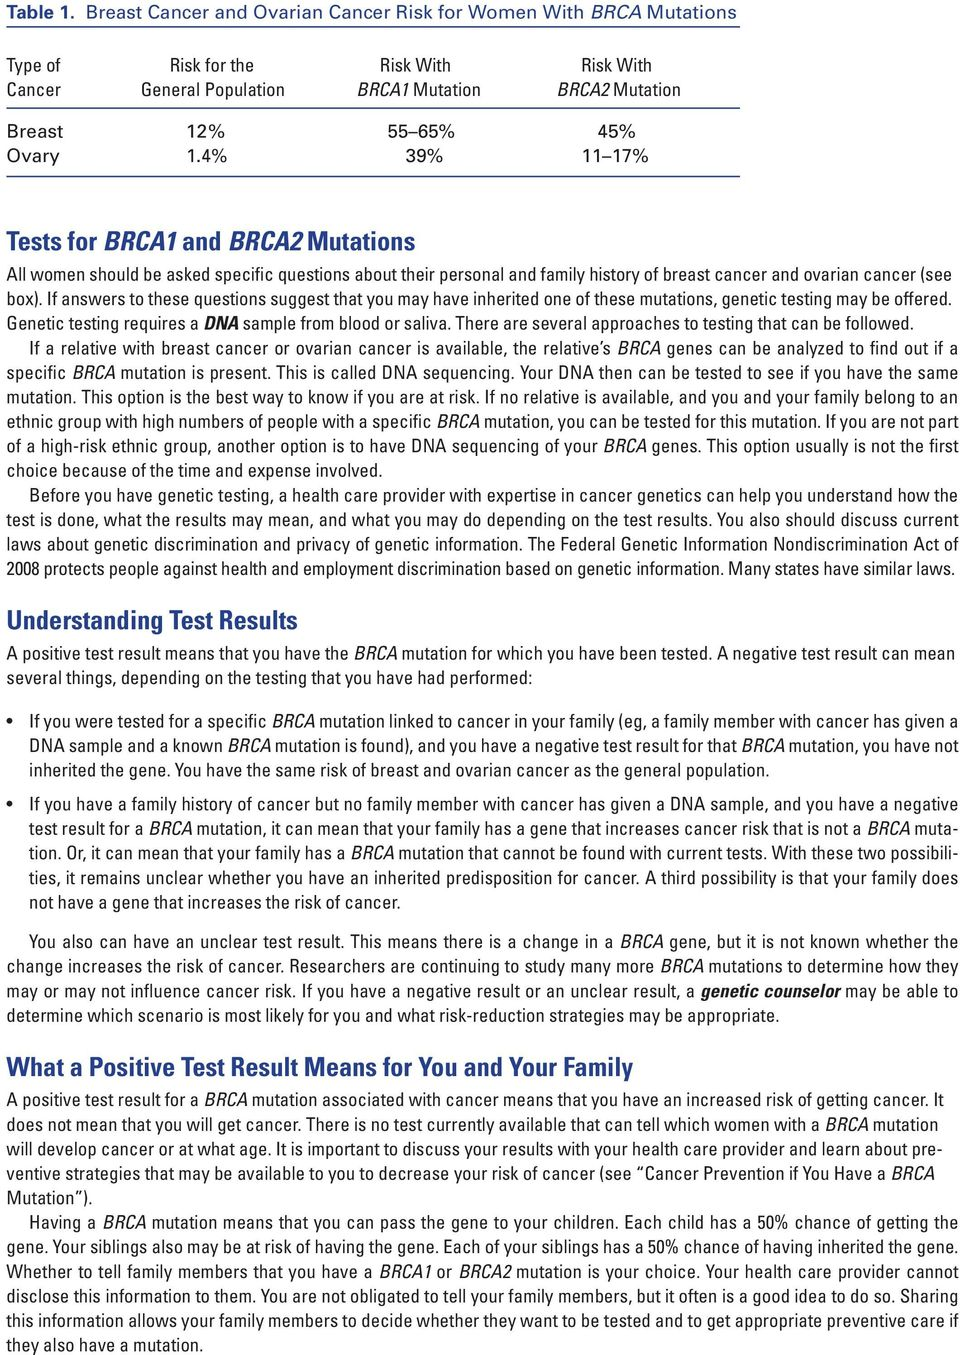 patient education Fact Sheet PFS007: BRCA1 and BRCA2